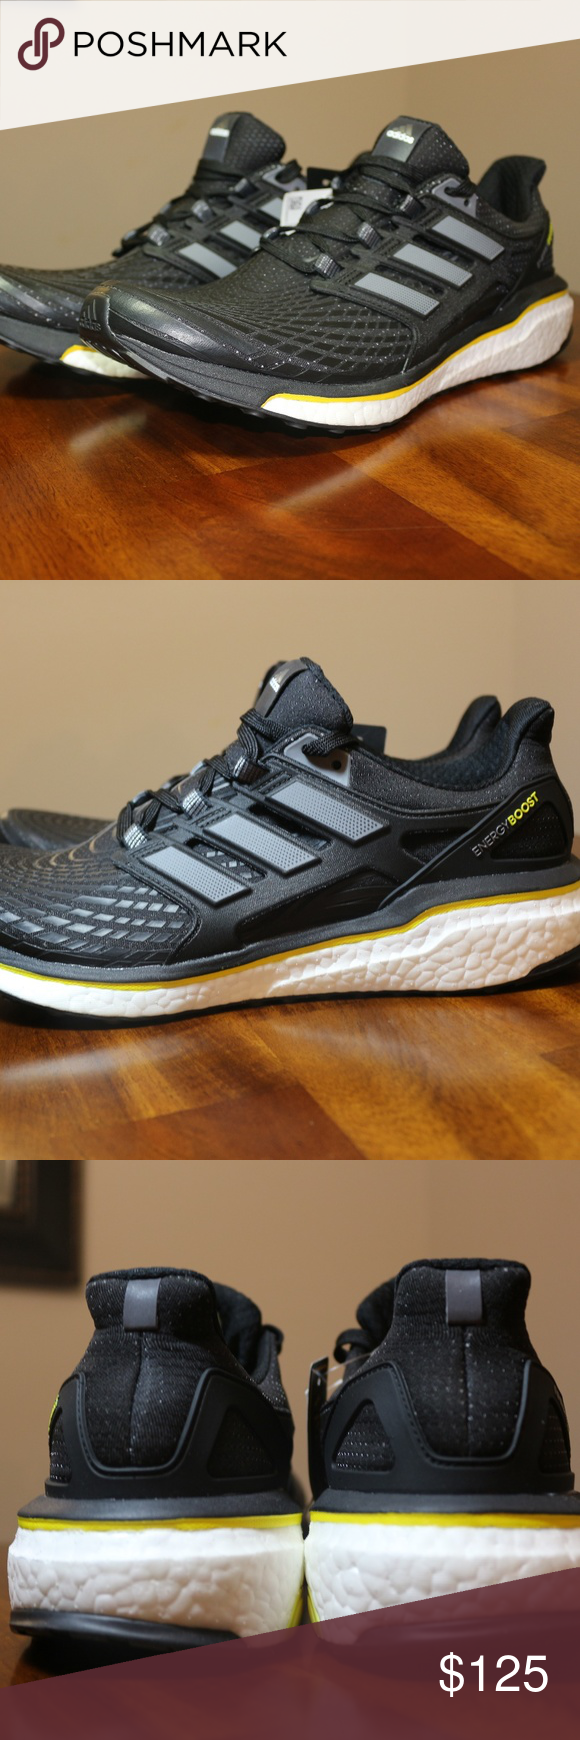 6ae848fd7 Adidas Energy Boost